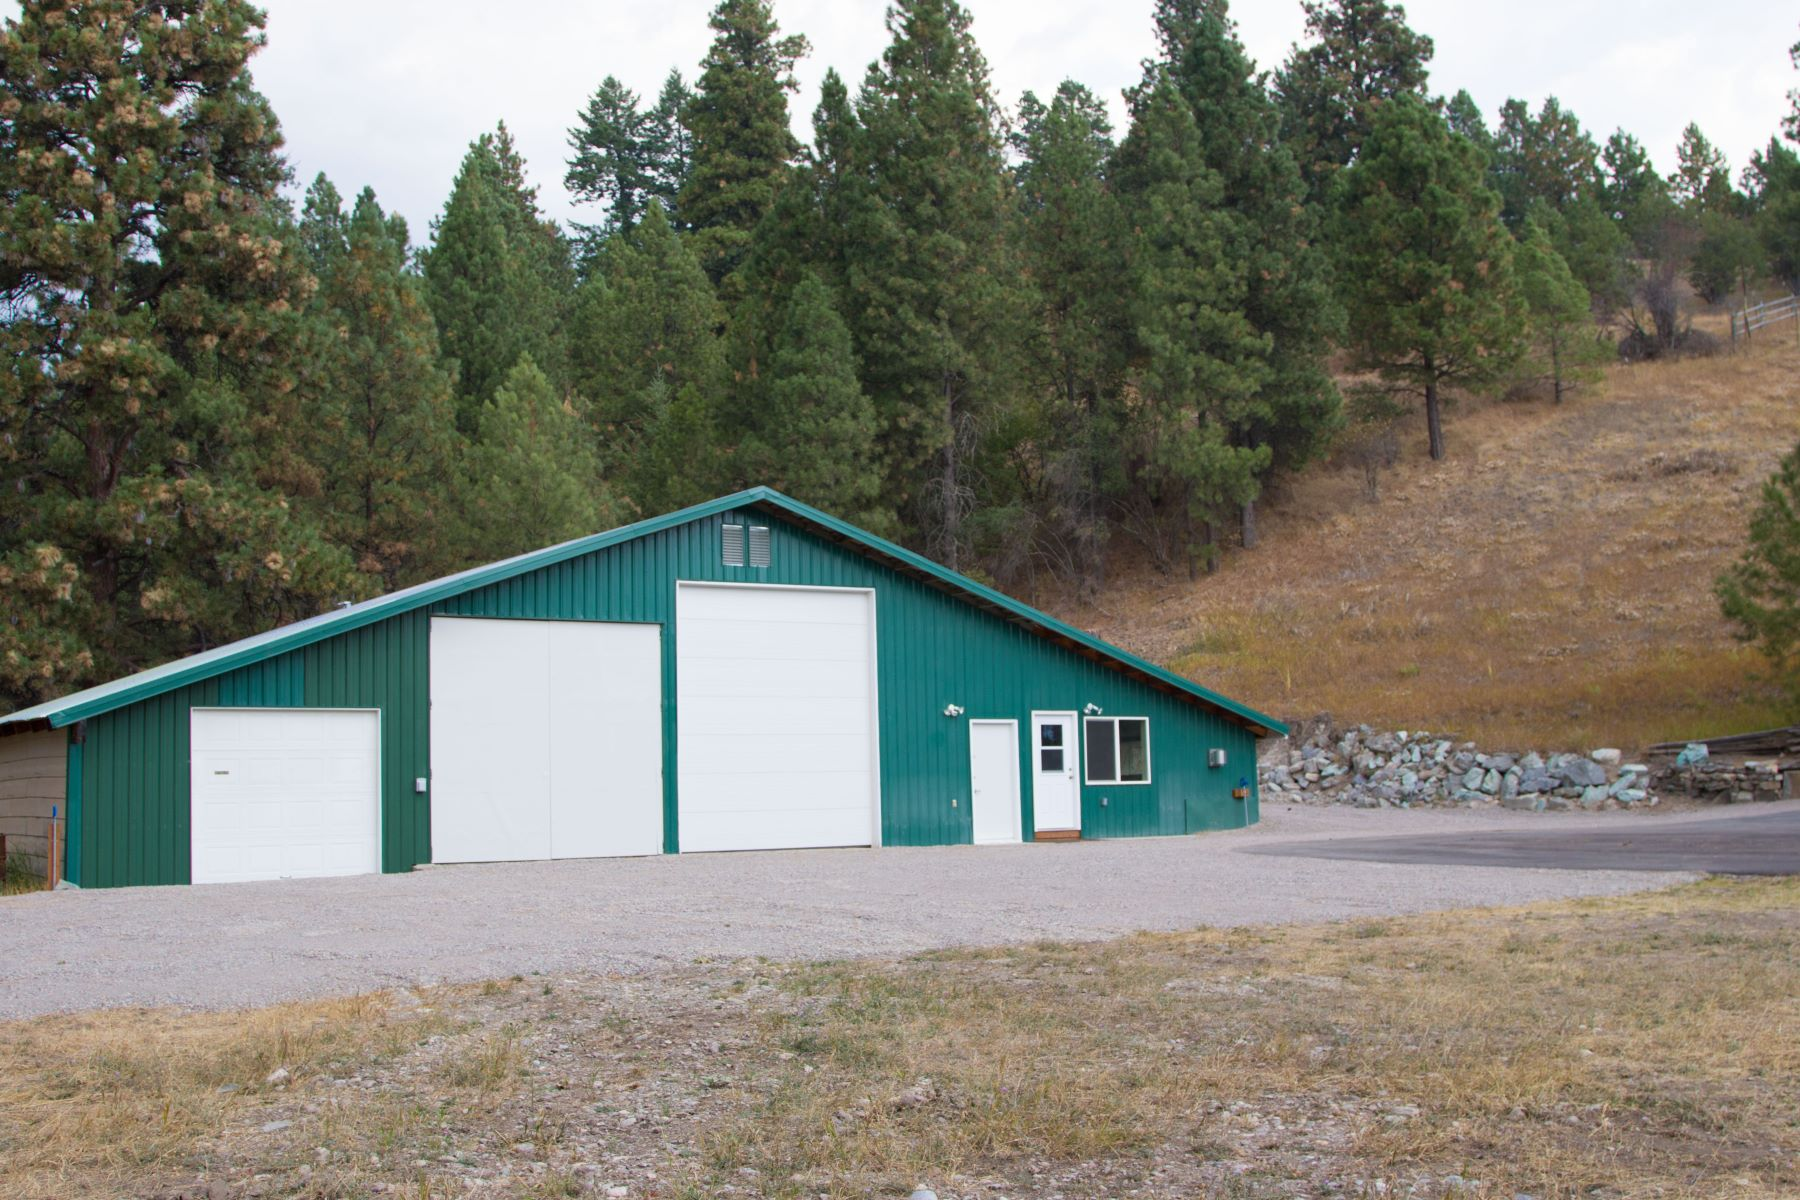 Additional photo for property listing at 232 Crestview Dr , Bigfork, MT 59911 232  Crestview Dr Bigfork, Montana 59911 United States